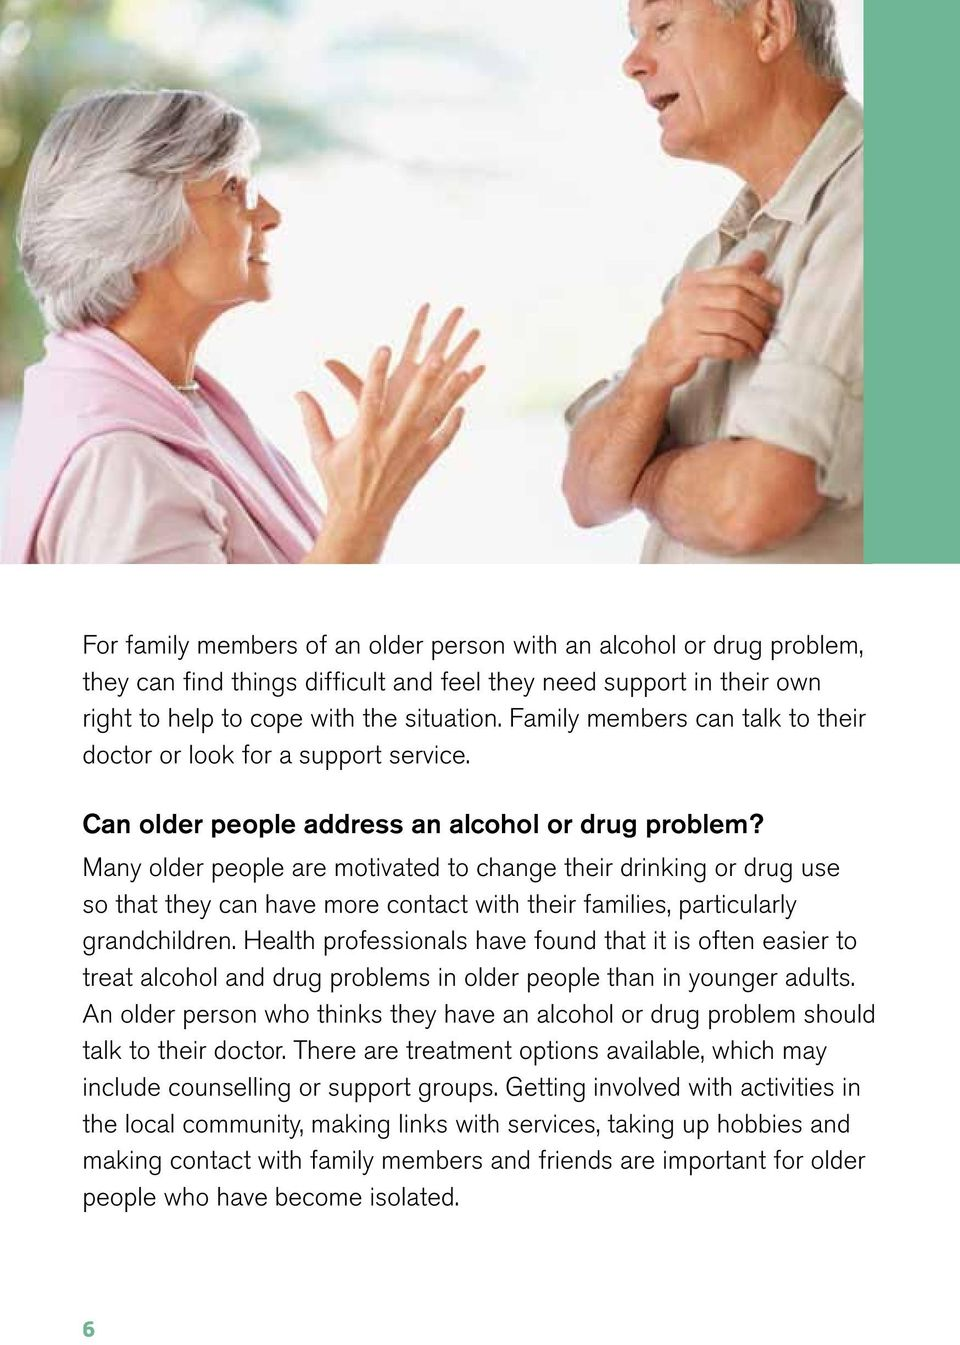 Many older people are motivated to change their drinking or drug use so that they can have more contact with their families, particularly grandchildren.